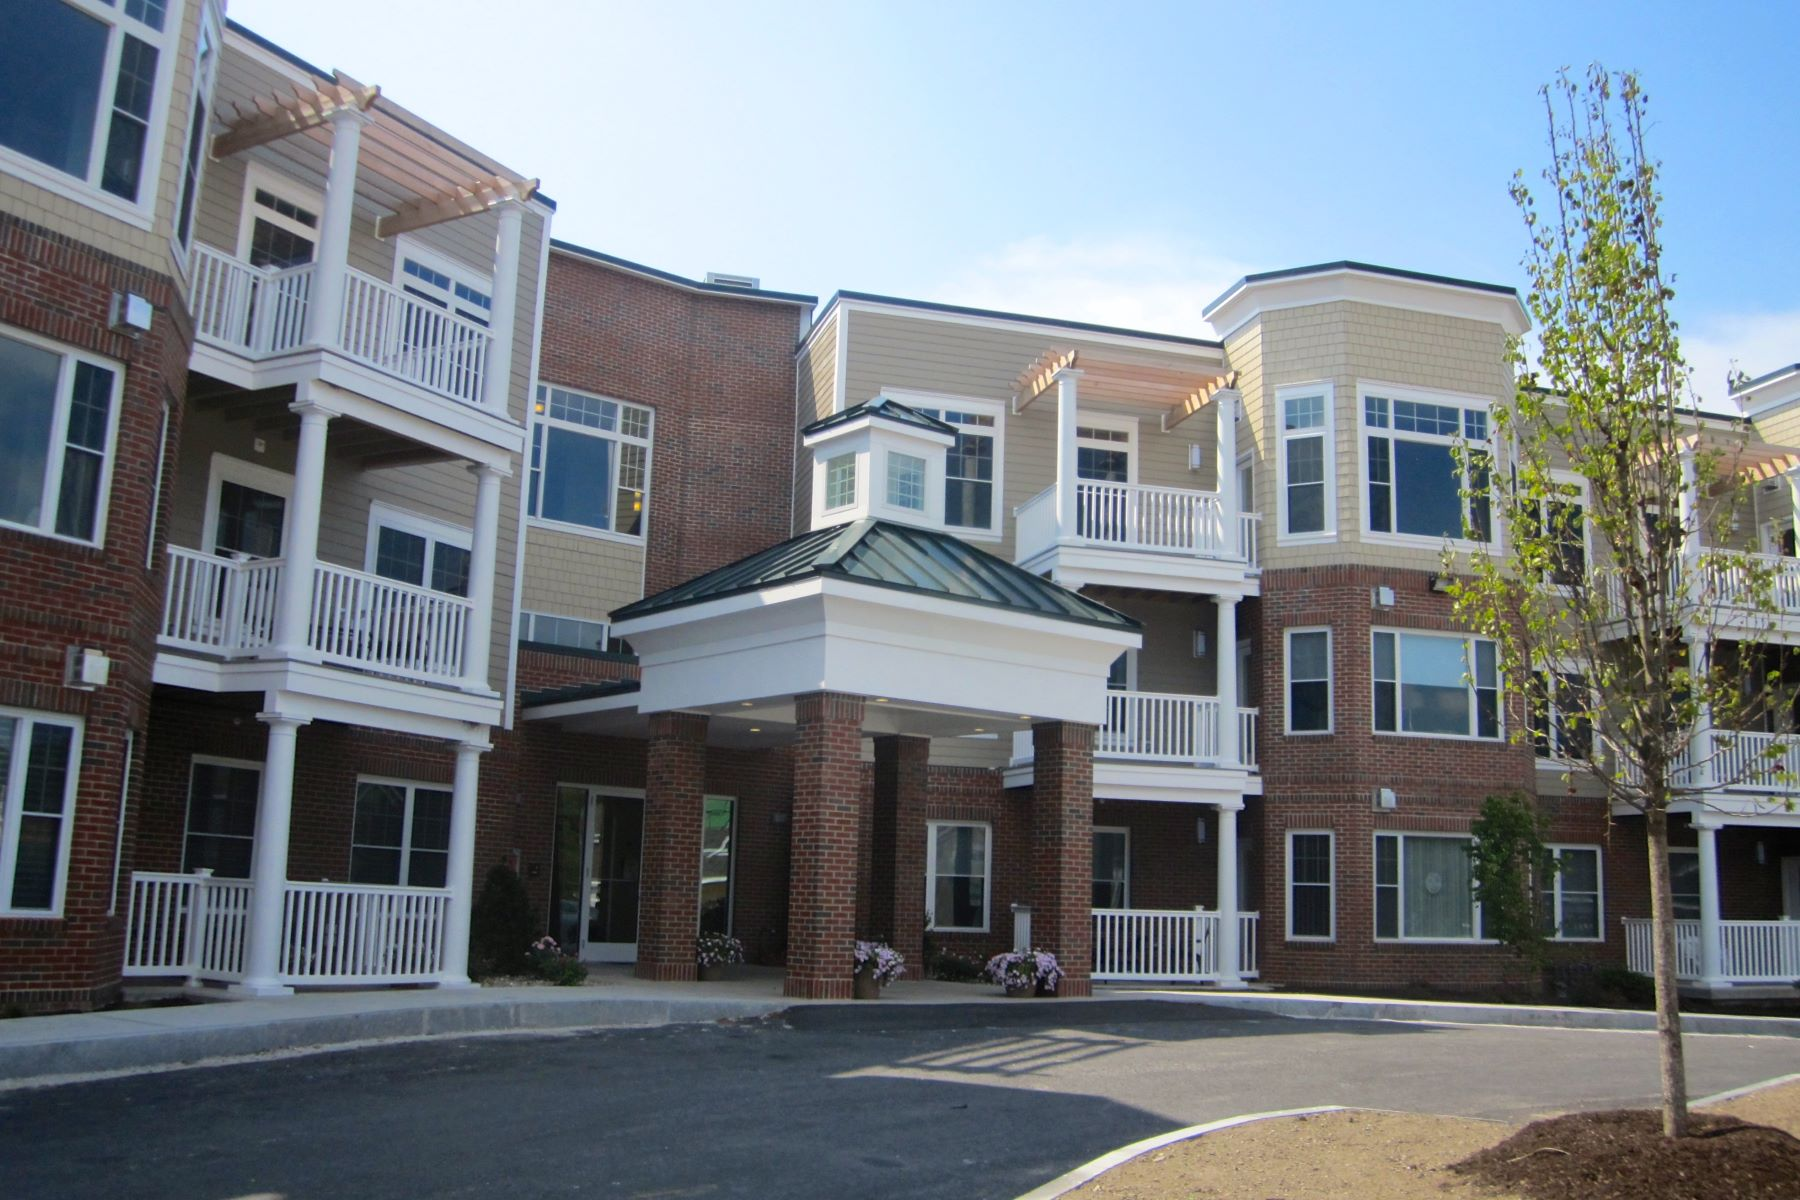 Condominium for Rent at 855 Main Street, Unit 311 855 Main Street Unit 311 Woburn, 01801 United States